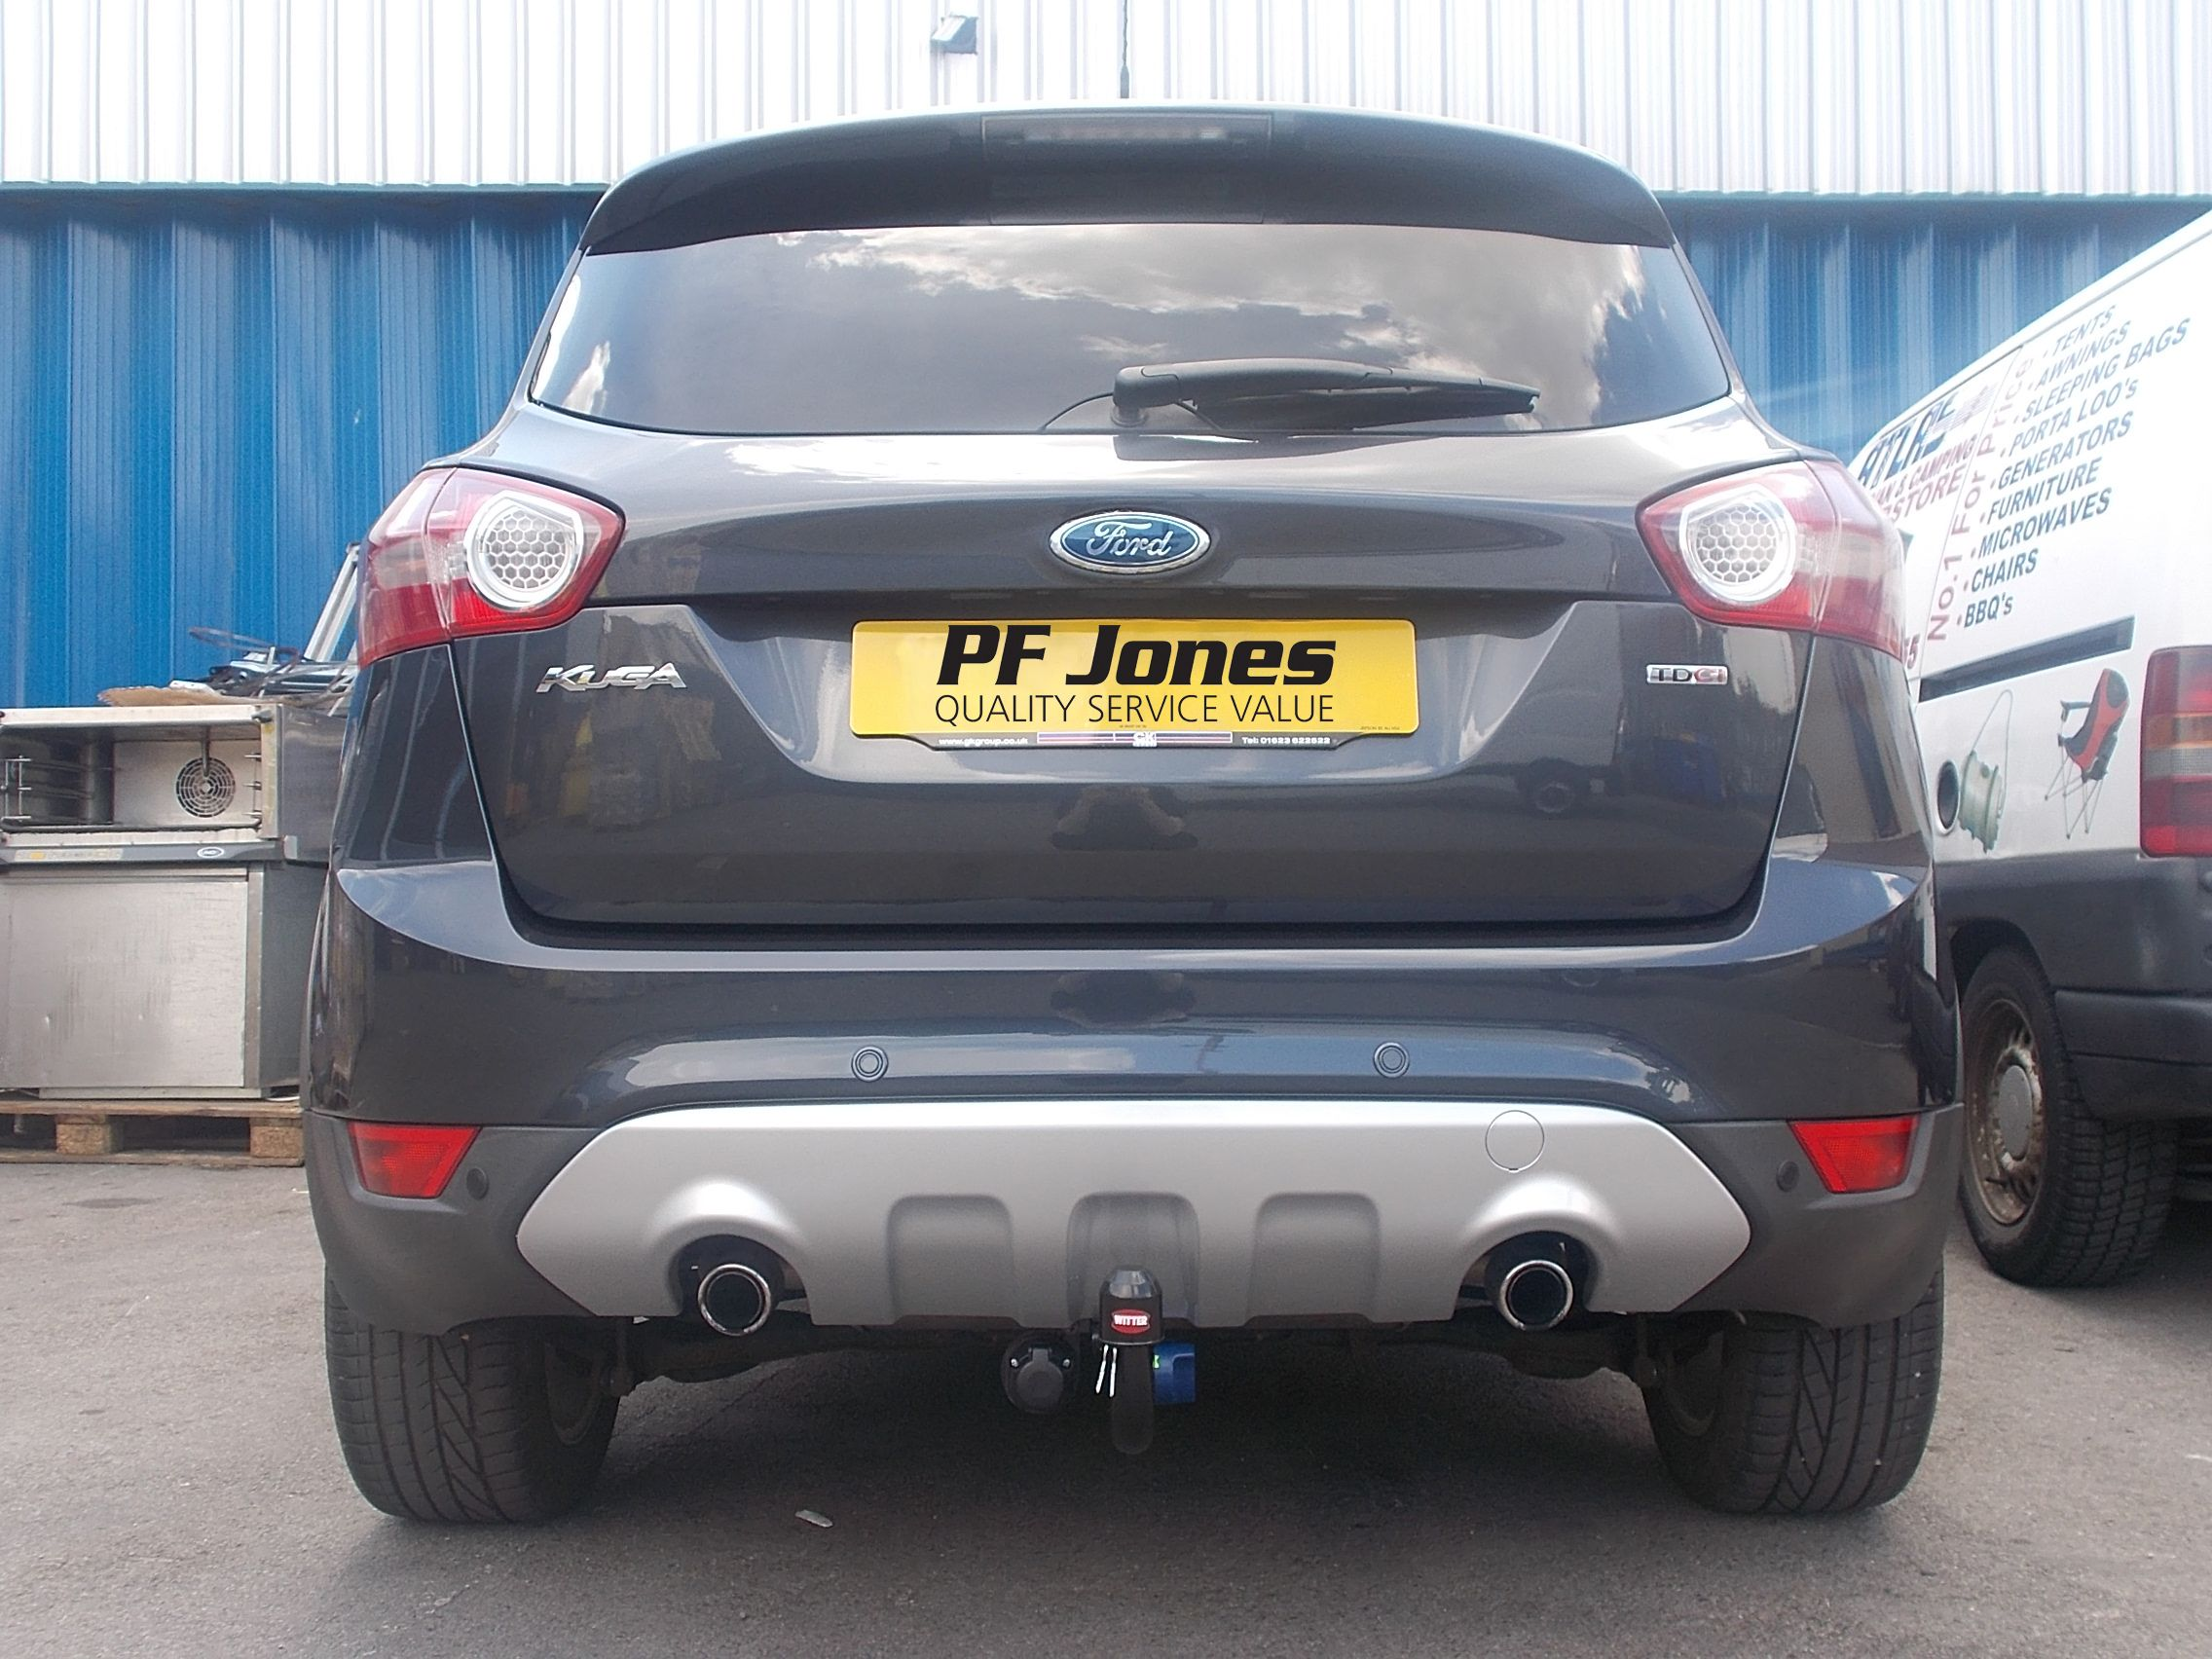 F165q witter detachable tow bar supplied and fitted on a ford kuga 2009 by pf